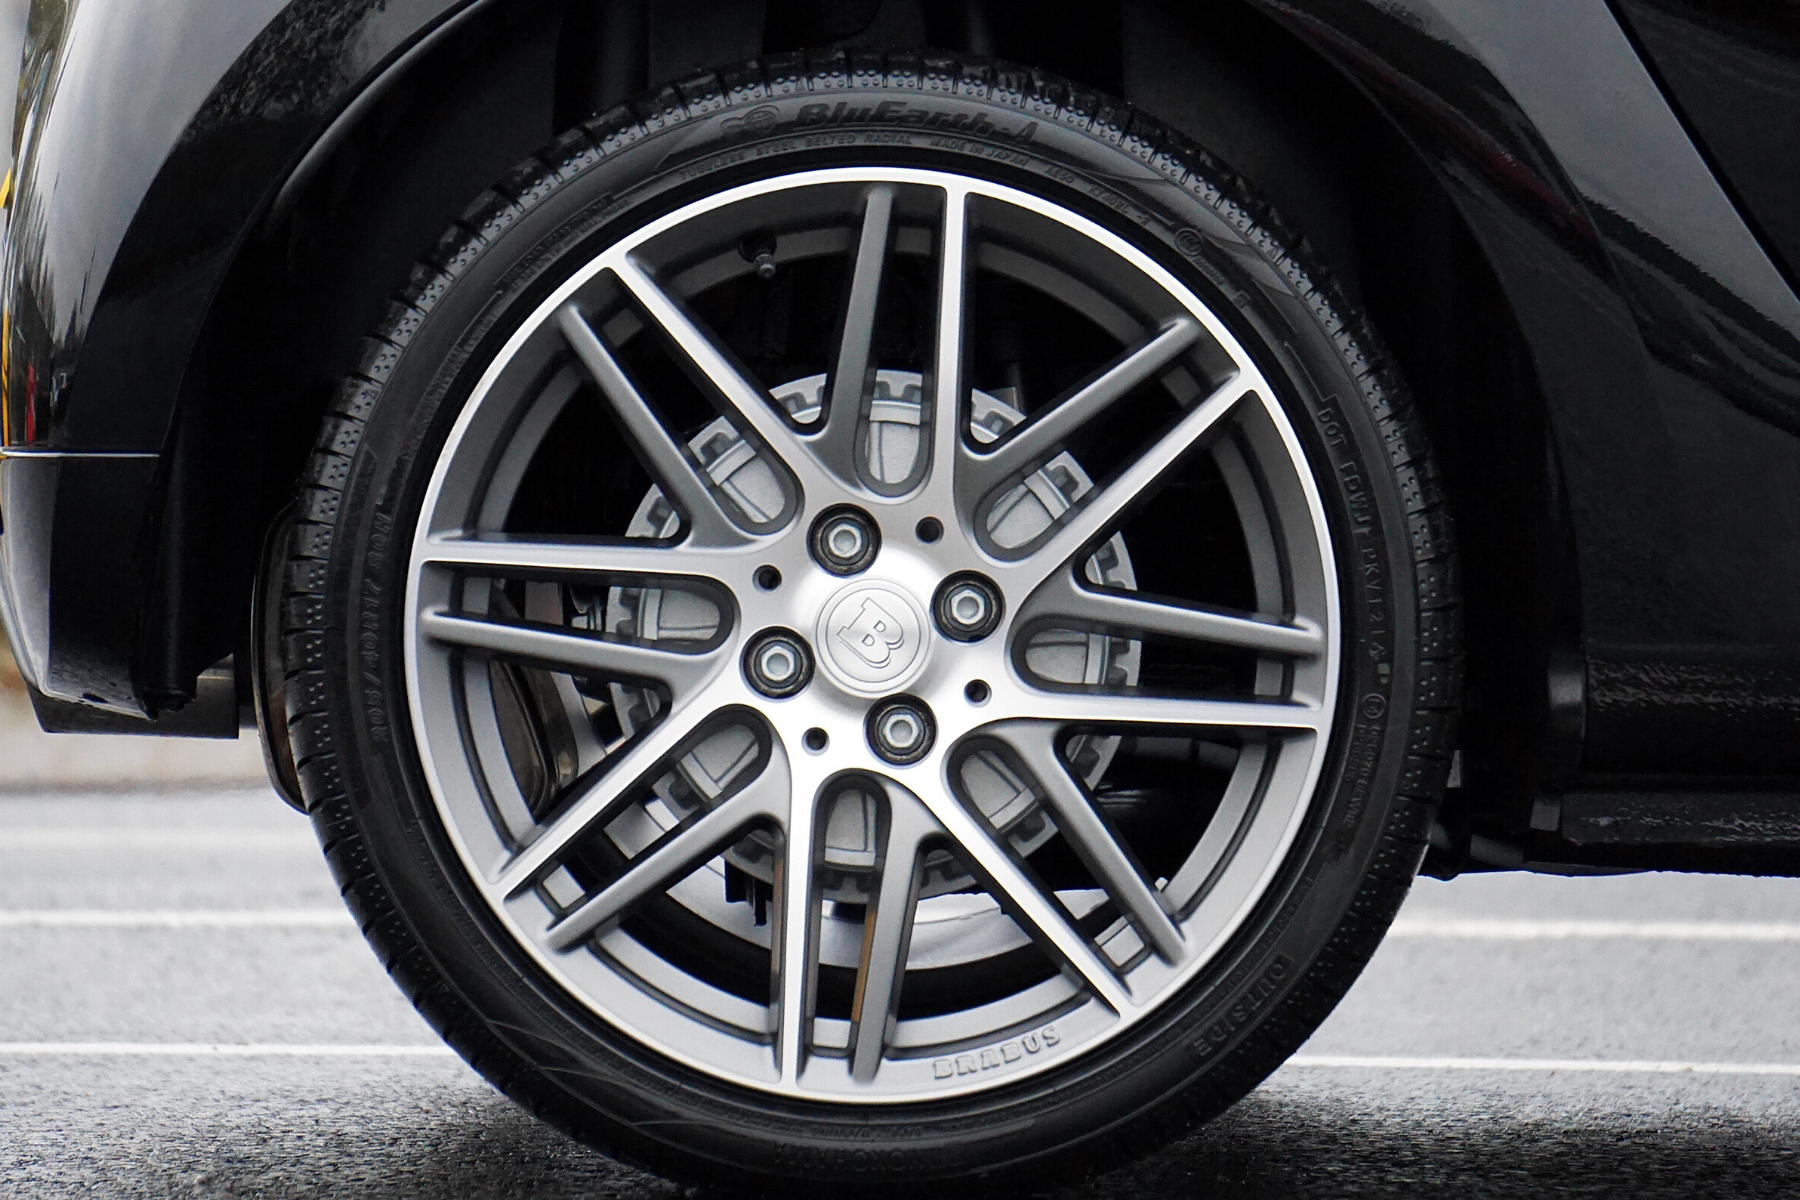 Steel Rims….or Aluminum Rims?